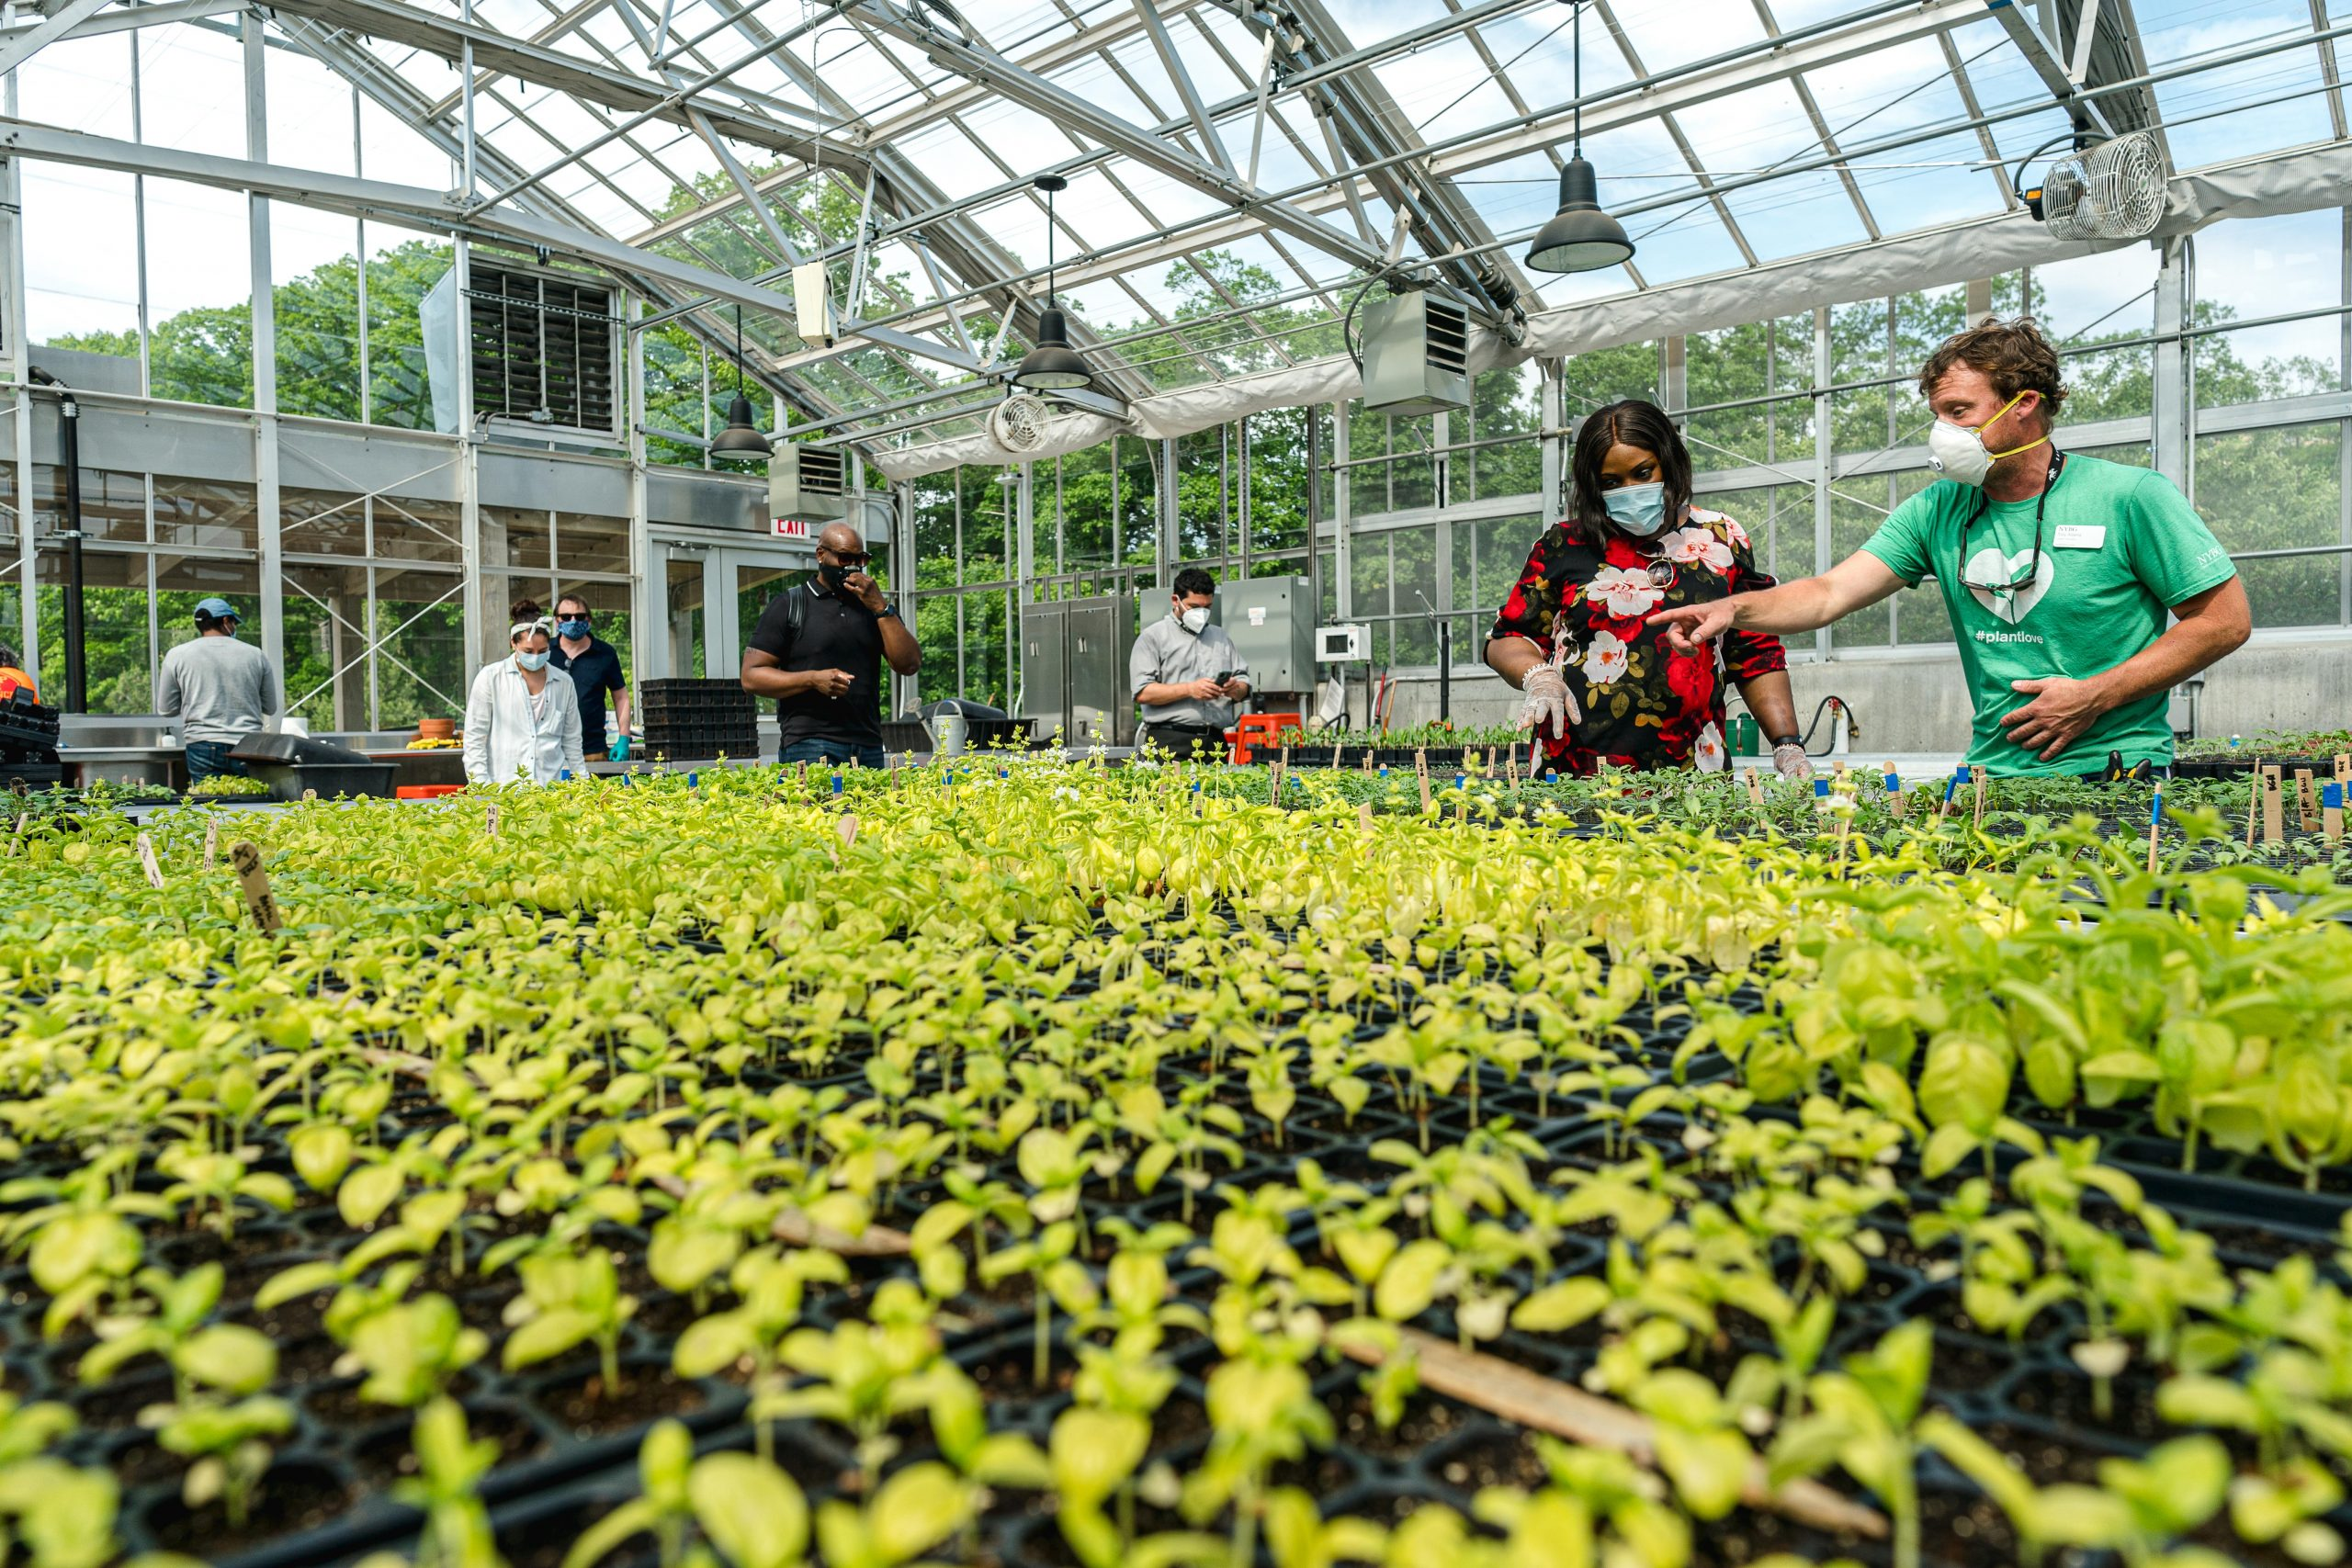 Photo of people working in the greenhouse